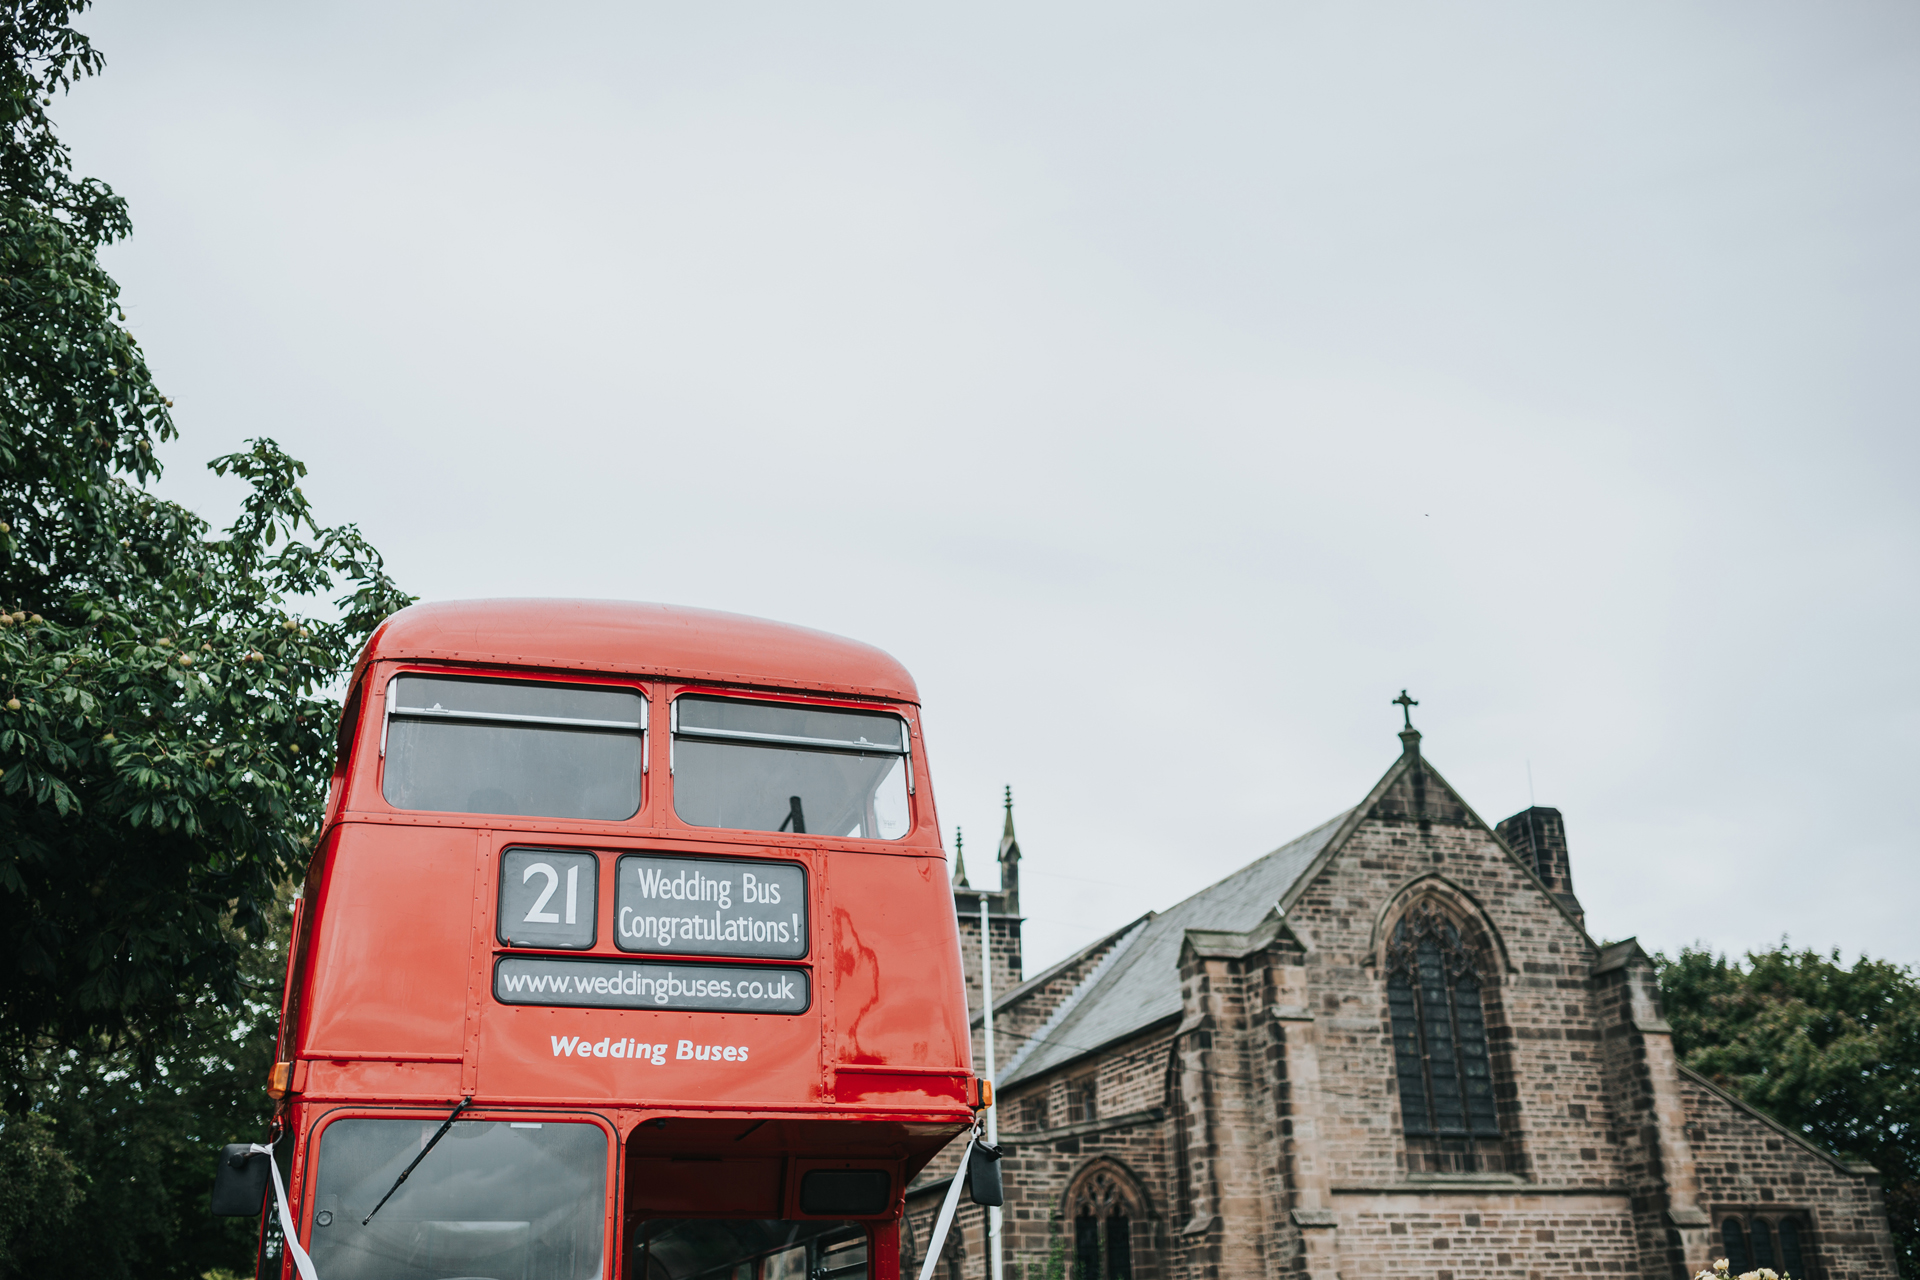 Front of the wedding bus parked next to the church.